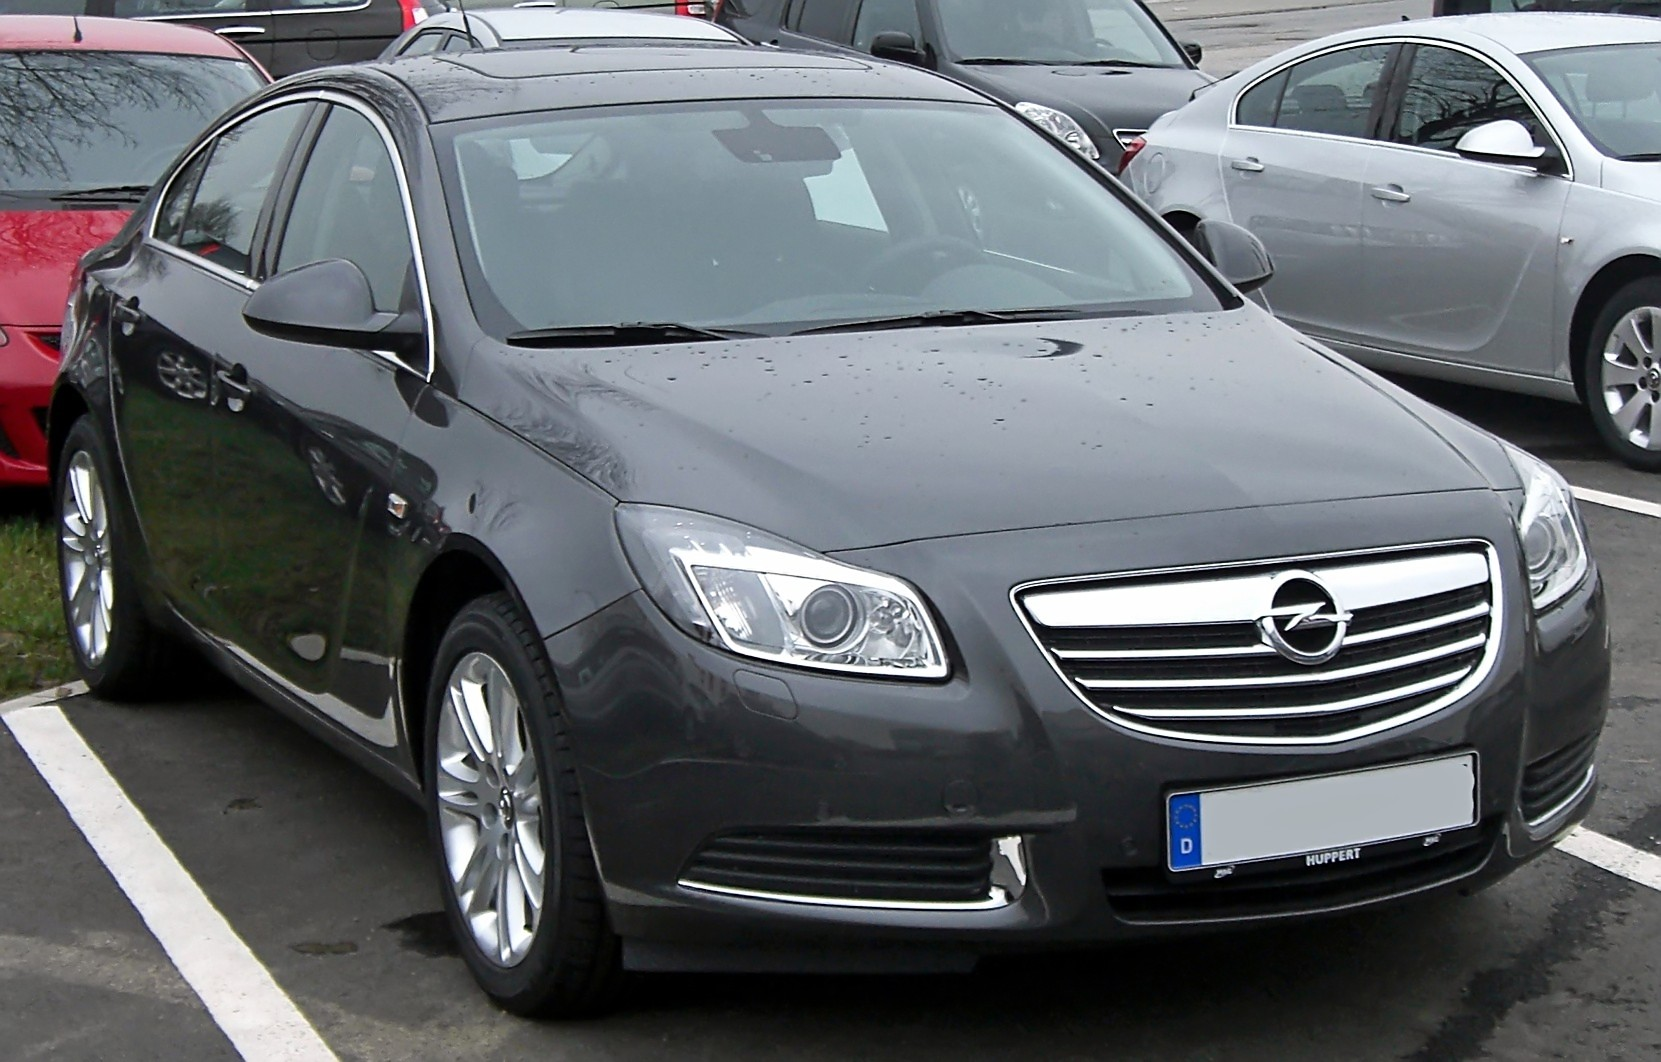 opel insignia related images start 50 weili automotive network. Black Bedroom Furniture Sets. Home Design Ideas